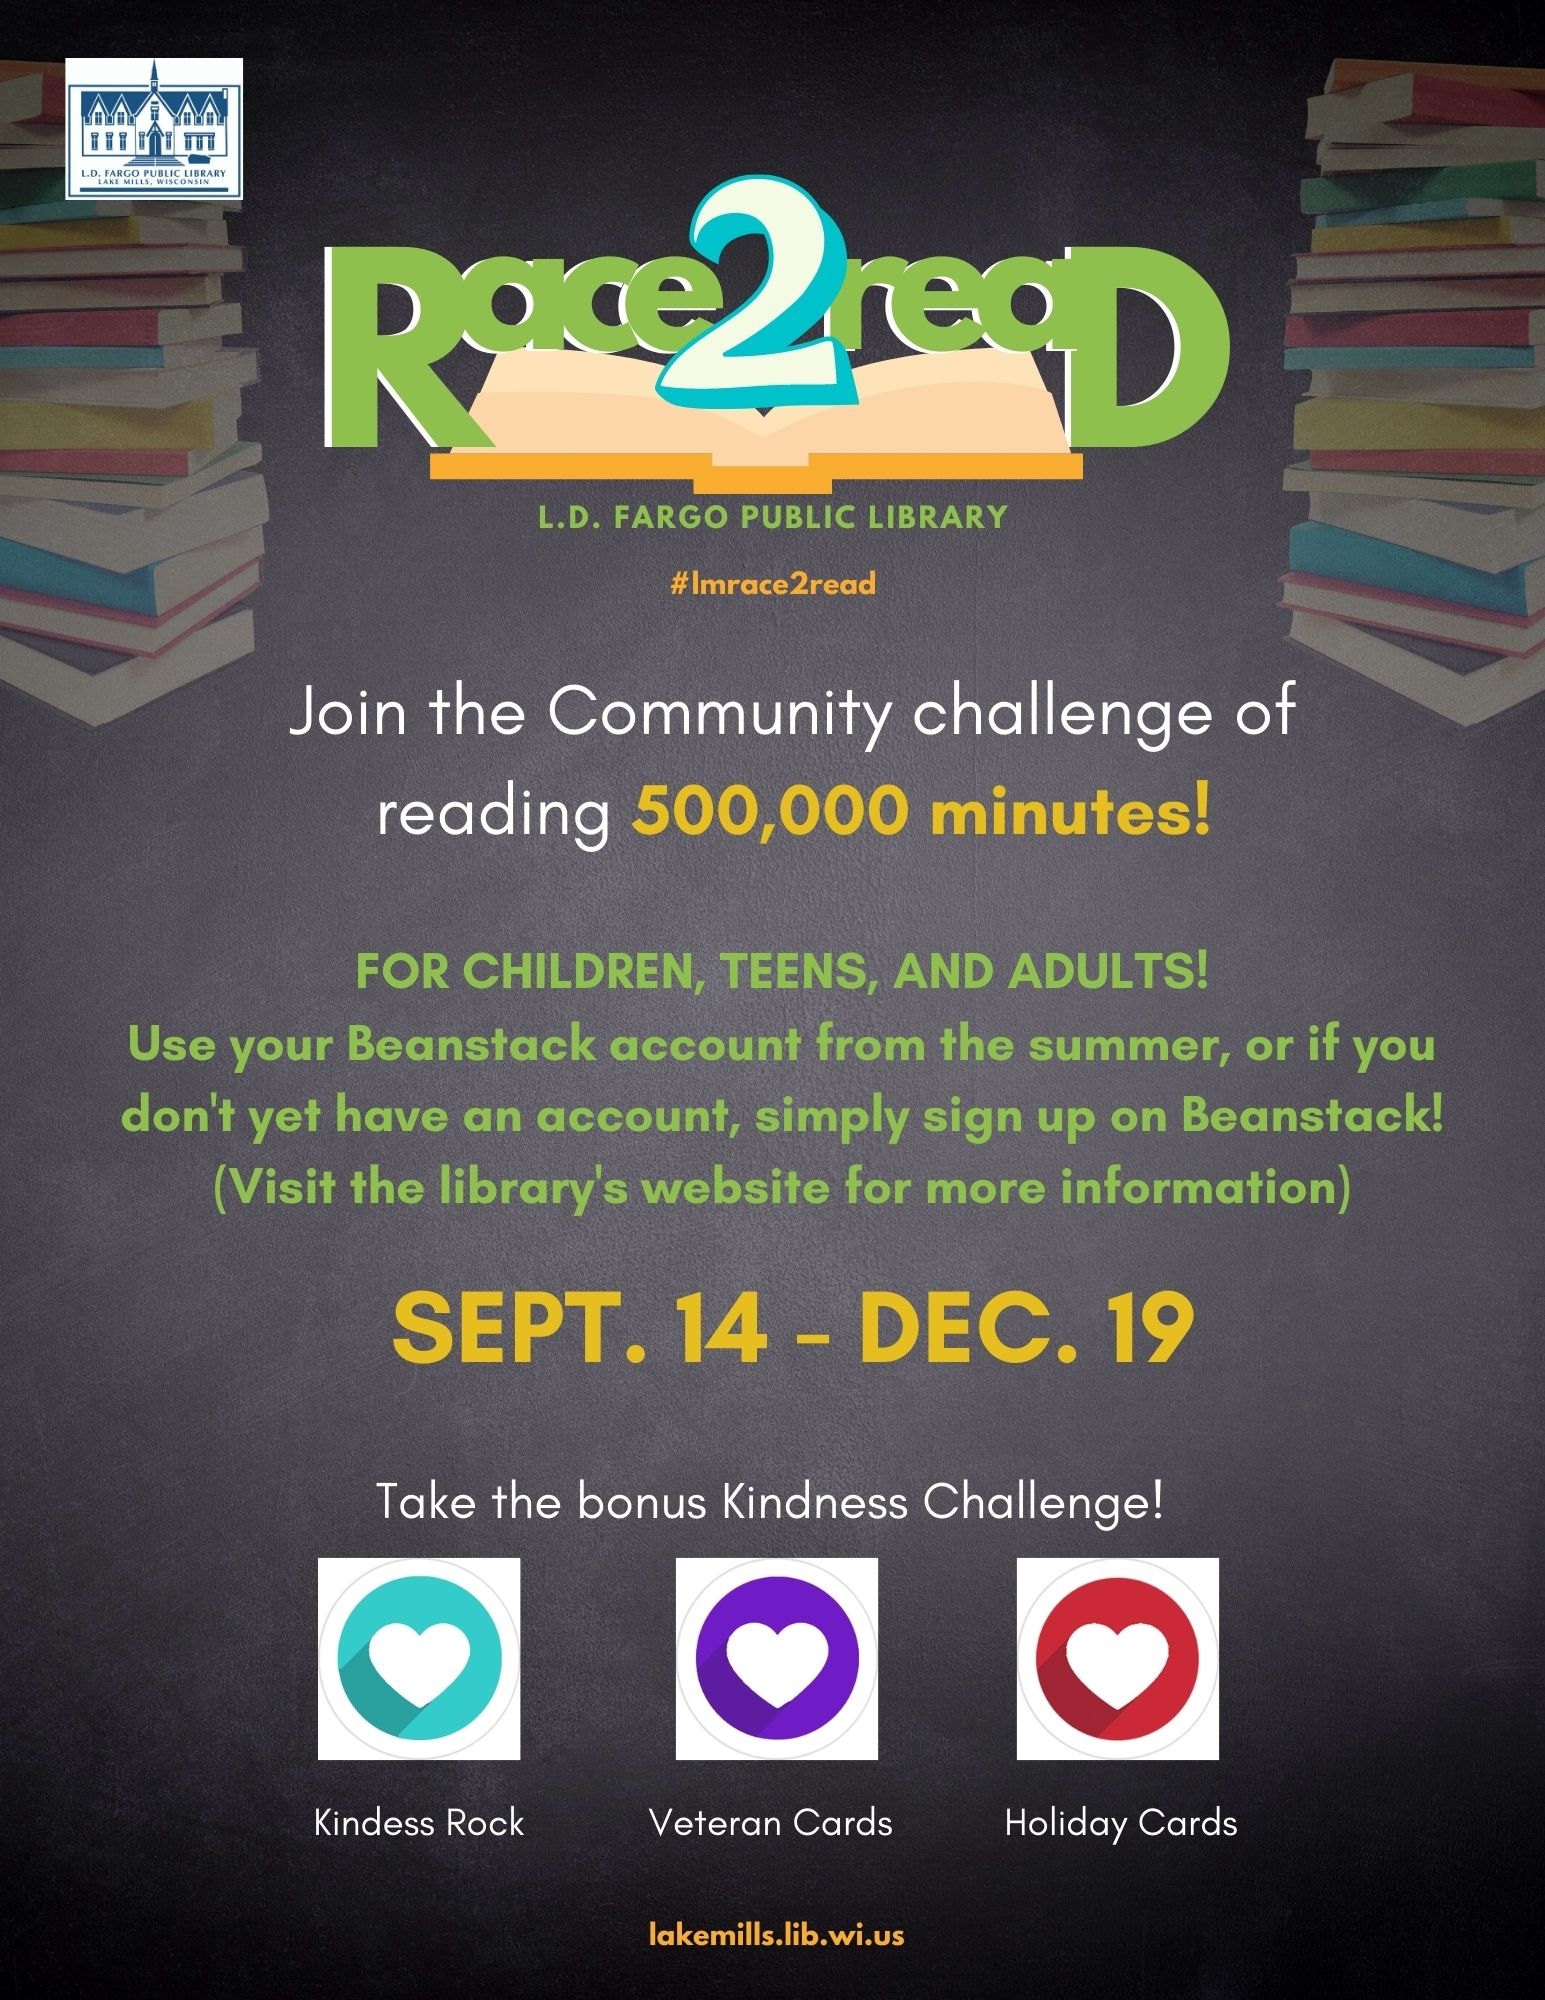 Join the Community challenge of reading 500,000 minutes!  FOR CHILDREN, TEENS, AND ADULTS!  Use your Beanstack account from the summer, or if you don't yet have an account, simply sign up on Beanstack!  SEPT. 14 - DEC. 19